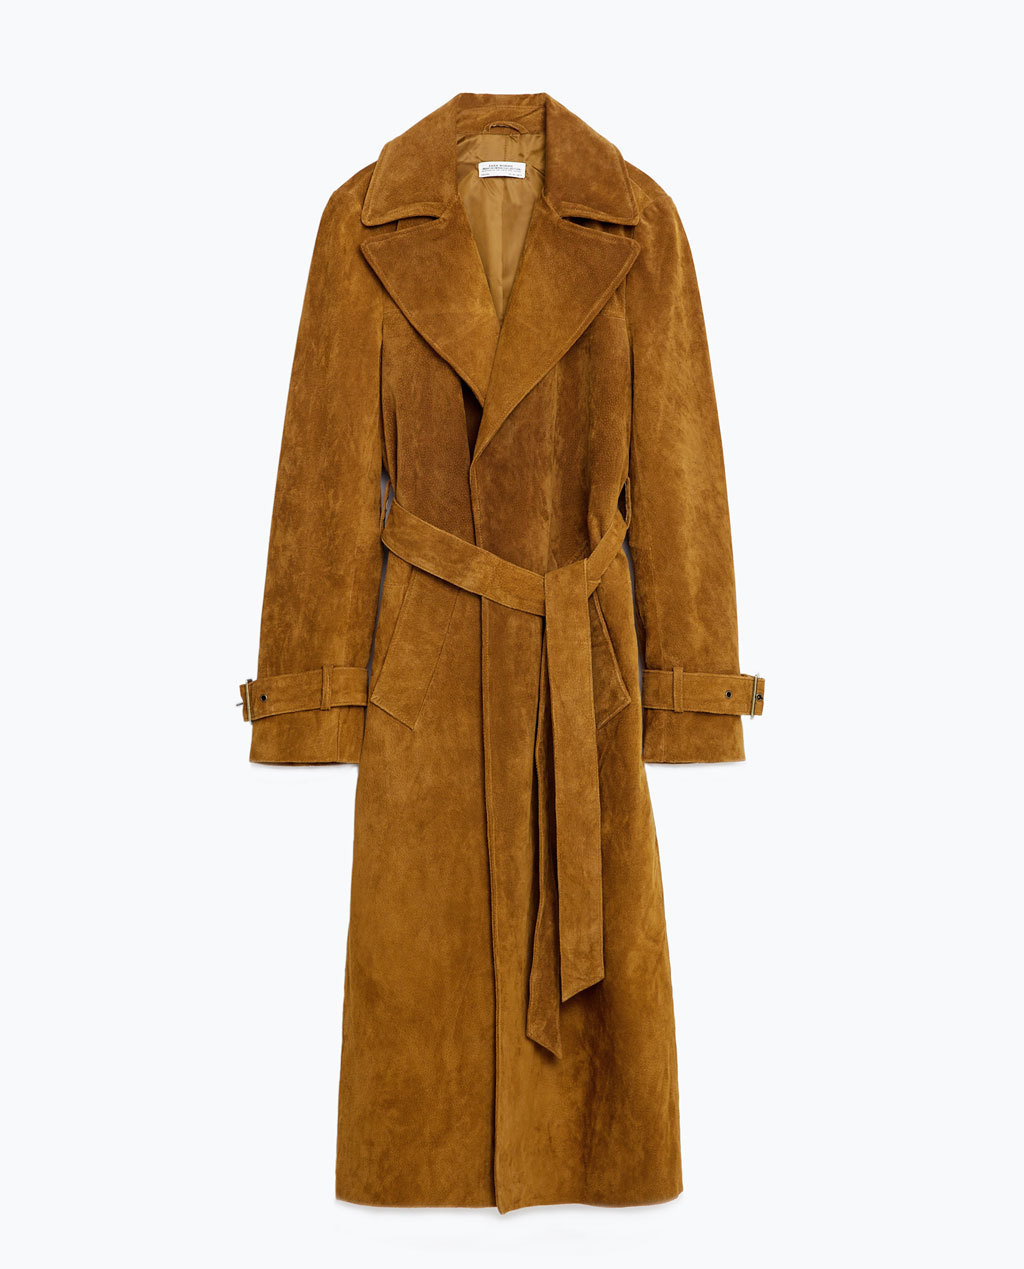 Leather Trench Coat - pattern: plain; style: trench coat; collar: standard lapel/rever collar; predominant colour: tan; occasions: work, creative work; fit: tailored/fitted; fibres: leather - 100%; length: below the knee; waist detail: belted waist/tie at waist/drawstring; sleeve length: long sleeve; sleeve style: standard; collar break: medium; pattern type: fabric; texture group: suede; season: s/s 2016; wardrobe: highlight